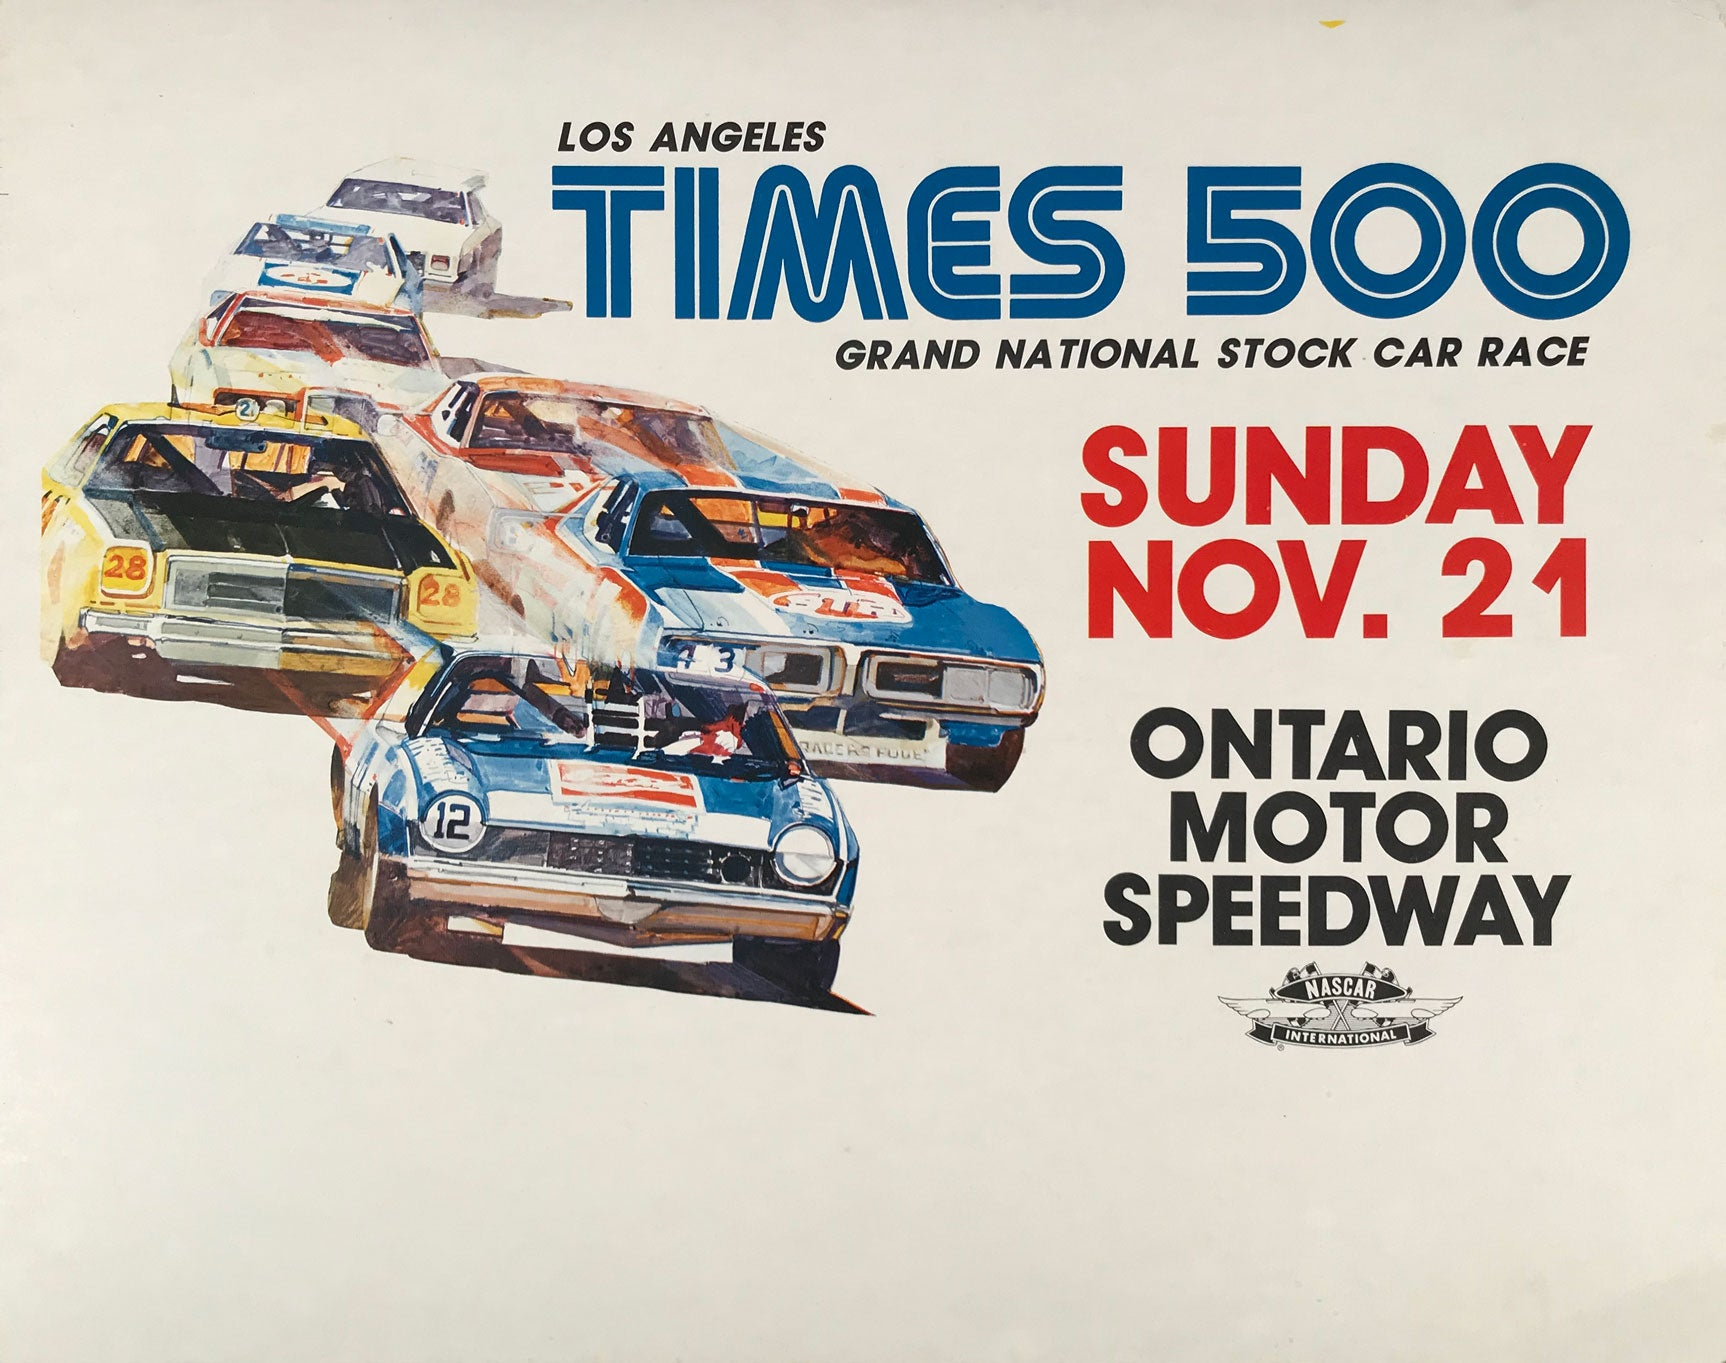 Los Angeles Times 500 at Ontario Motor Speeday, 1976